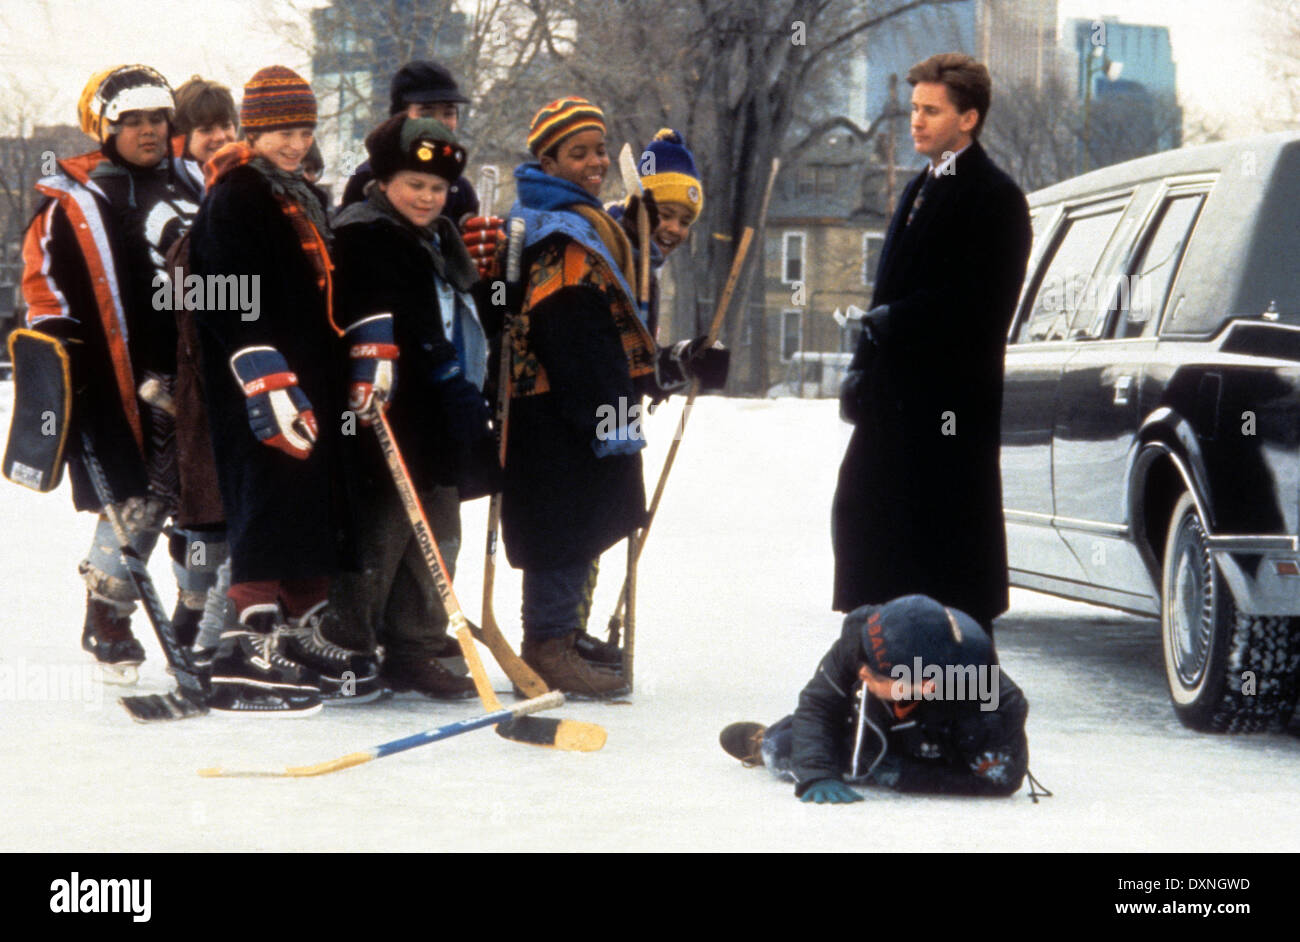 THE MIGHTY DUCKS - Stock Image